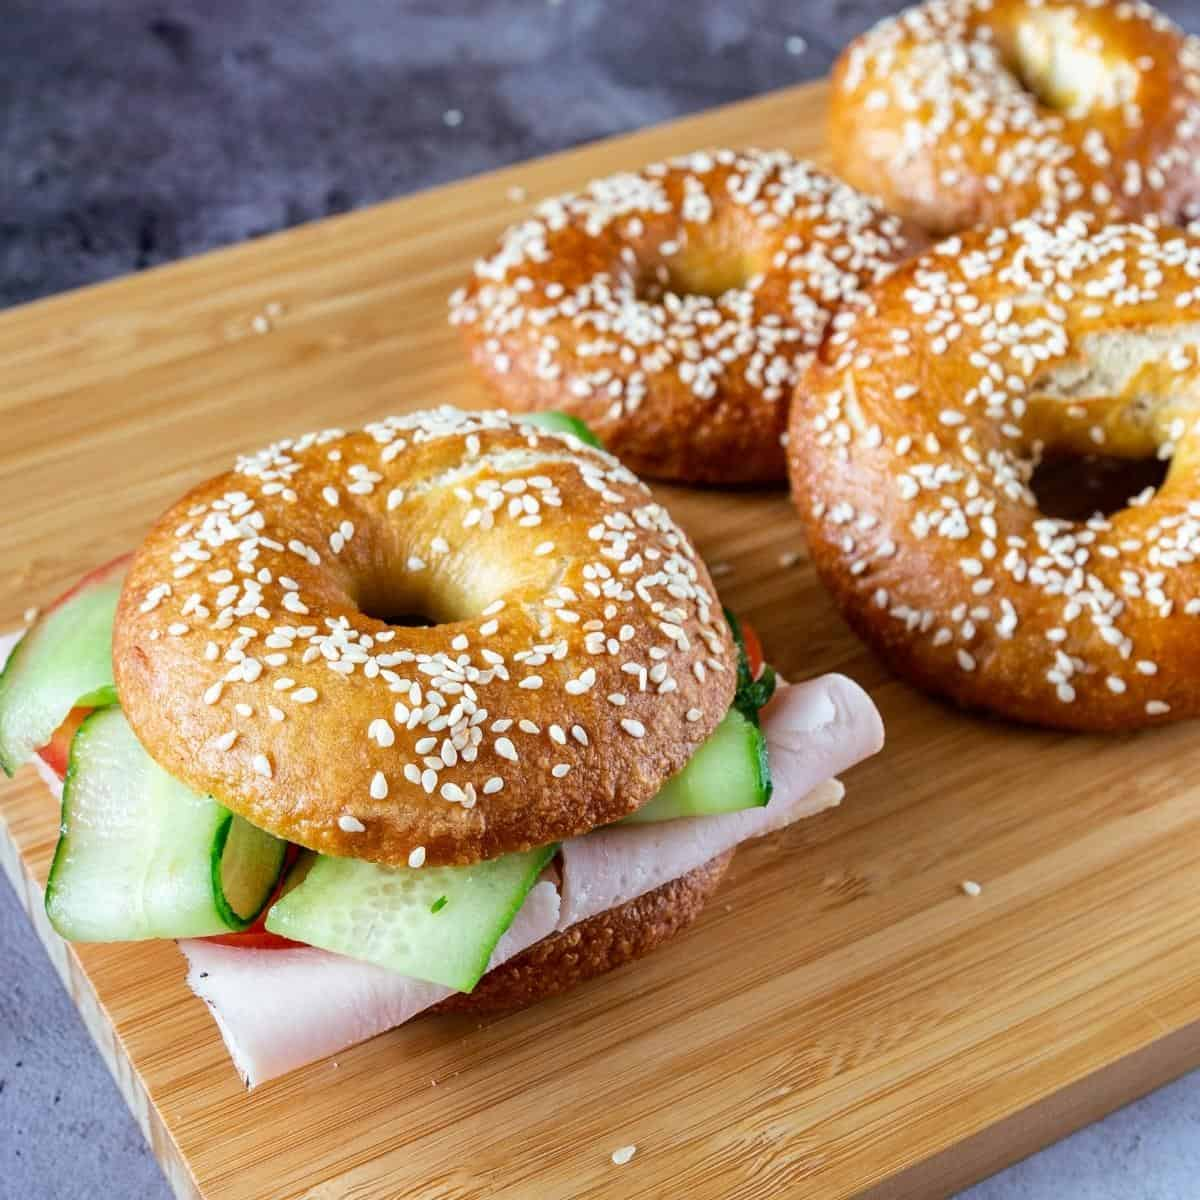 Bagels sandwich on a table.